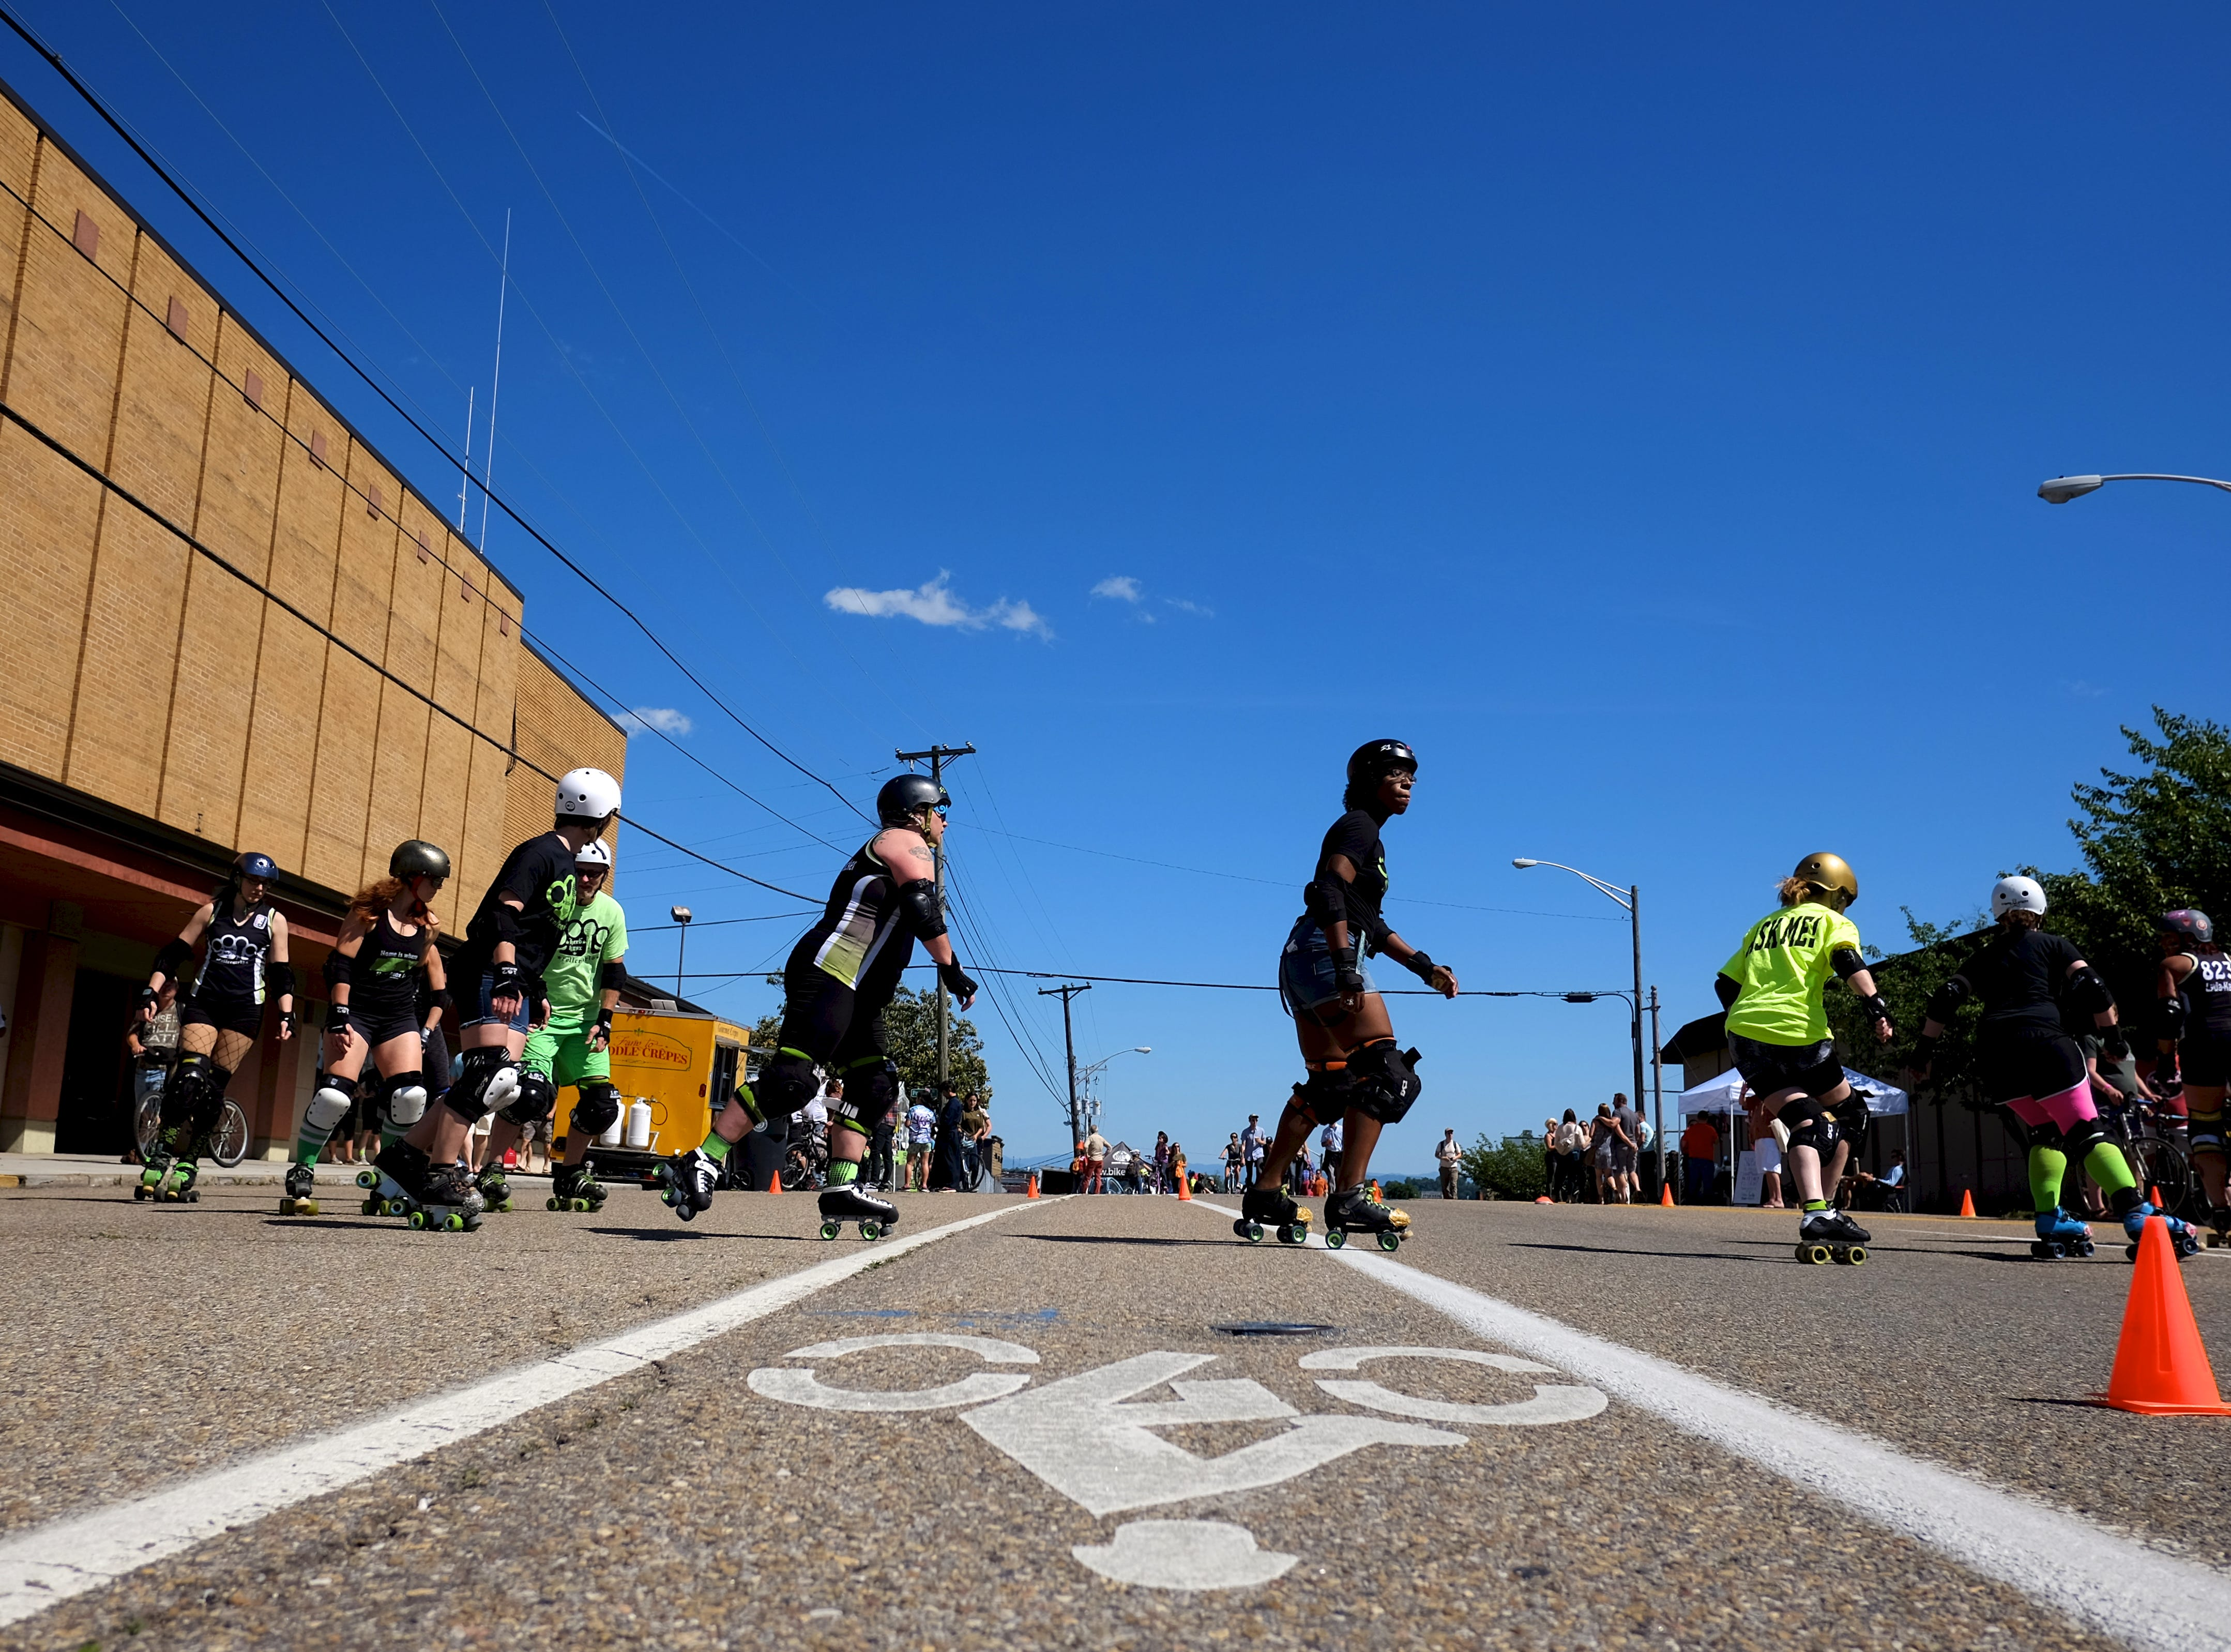 The Hard Knox Roller Girls do a demonstration during Open Streets Knoxville along Central Ave., on Sunday, May 15, 2016.